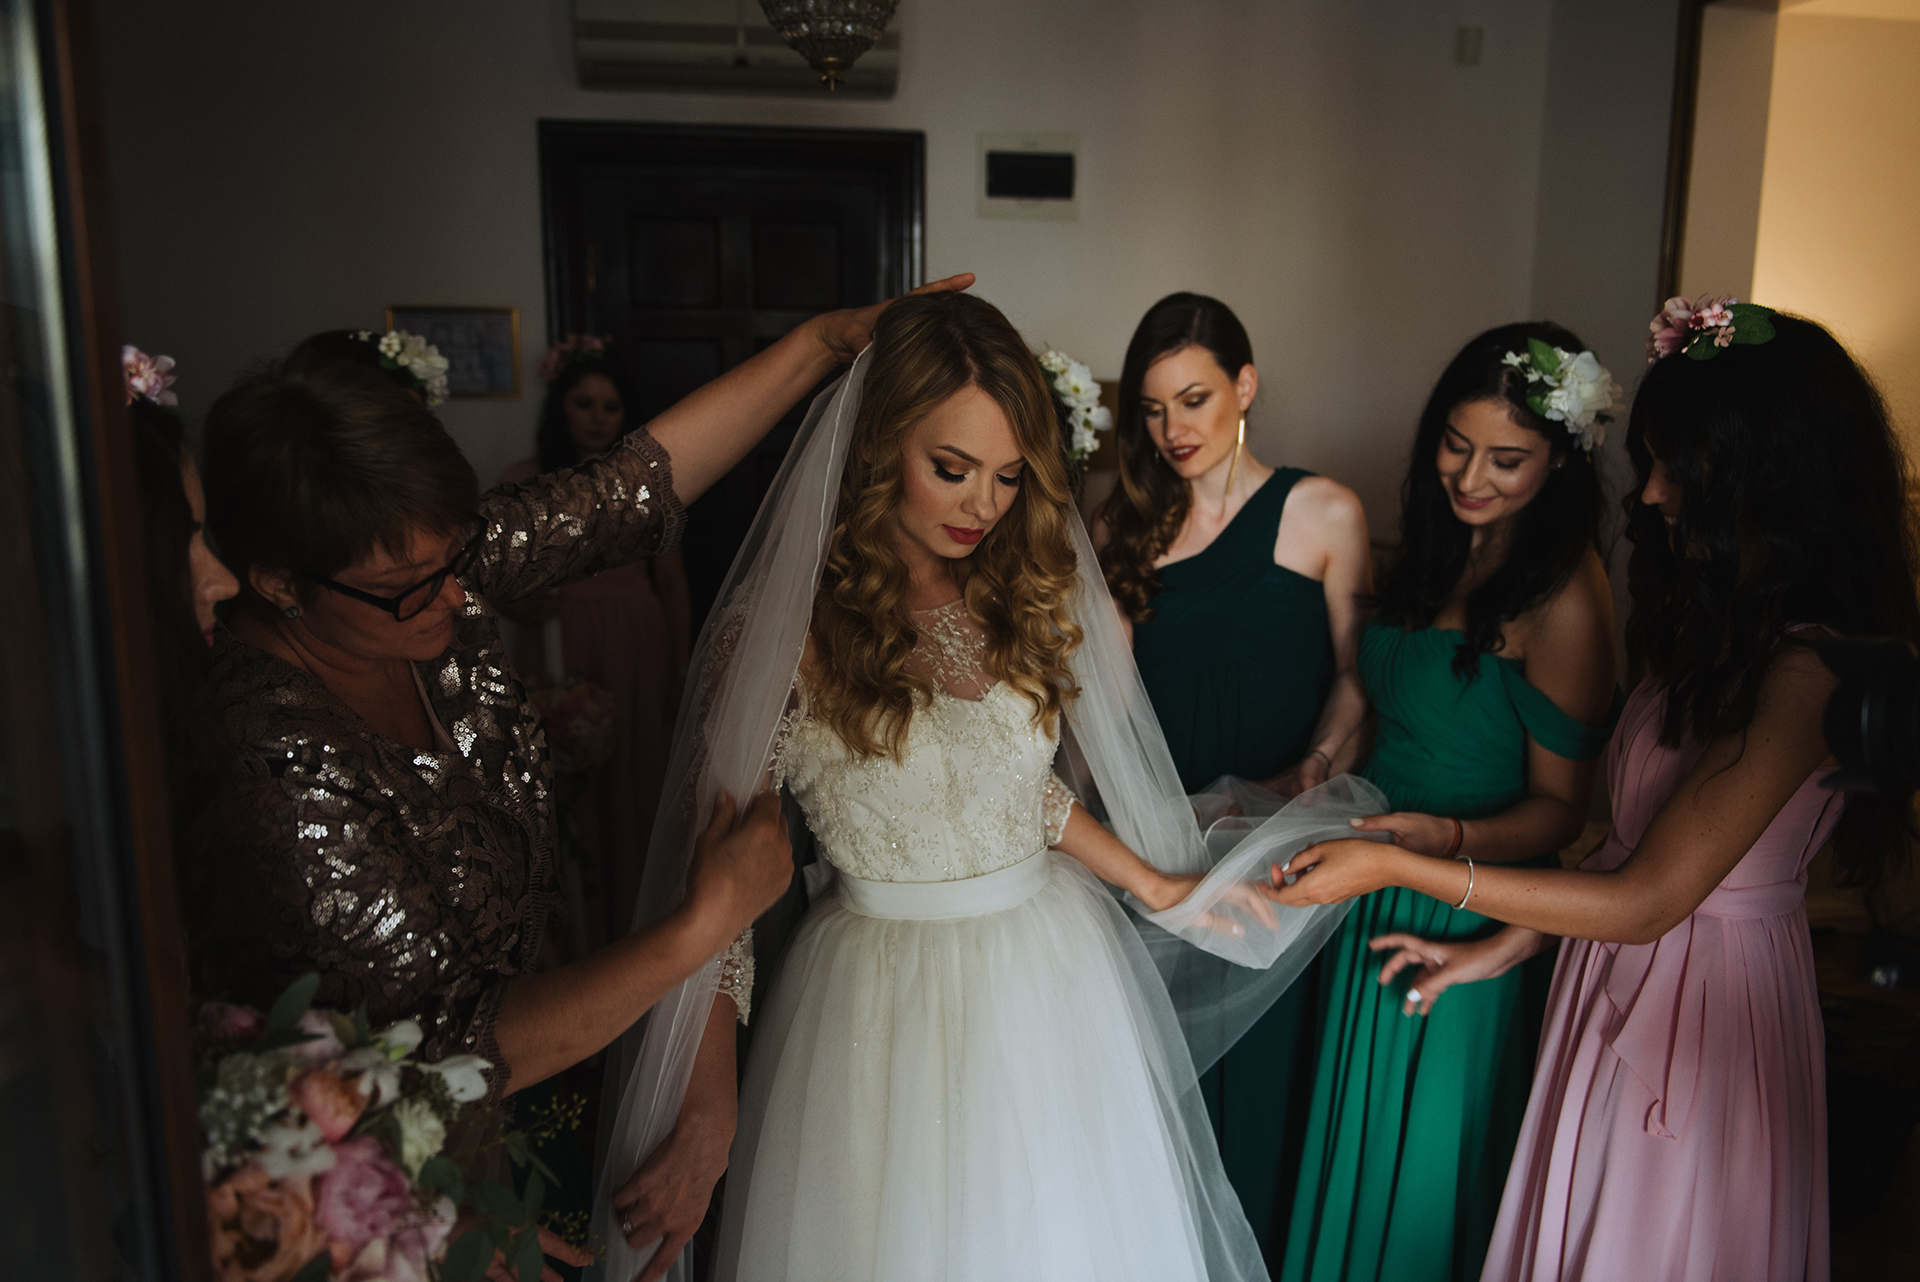 wedding-pink-and-green-bridesmaids-dresses-tulle-and-lace-wedding-dress (5)